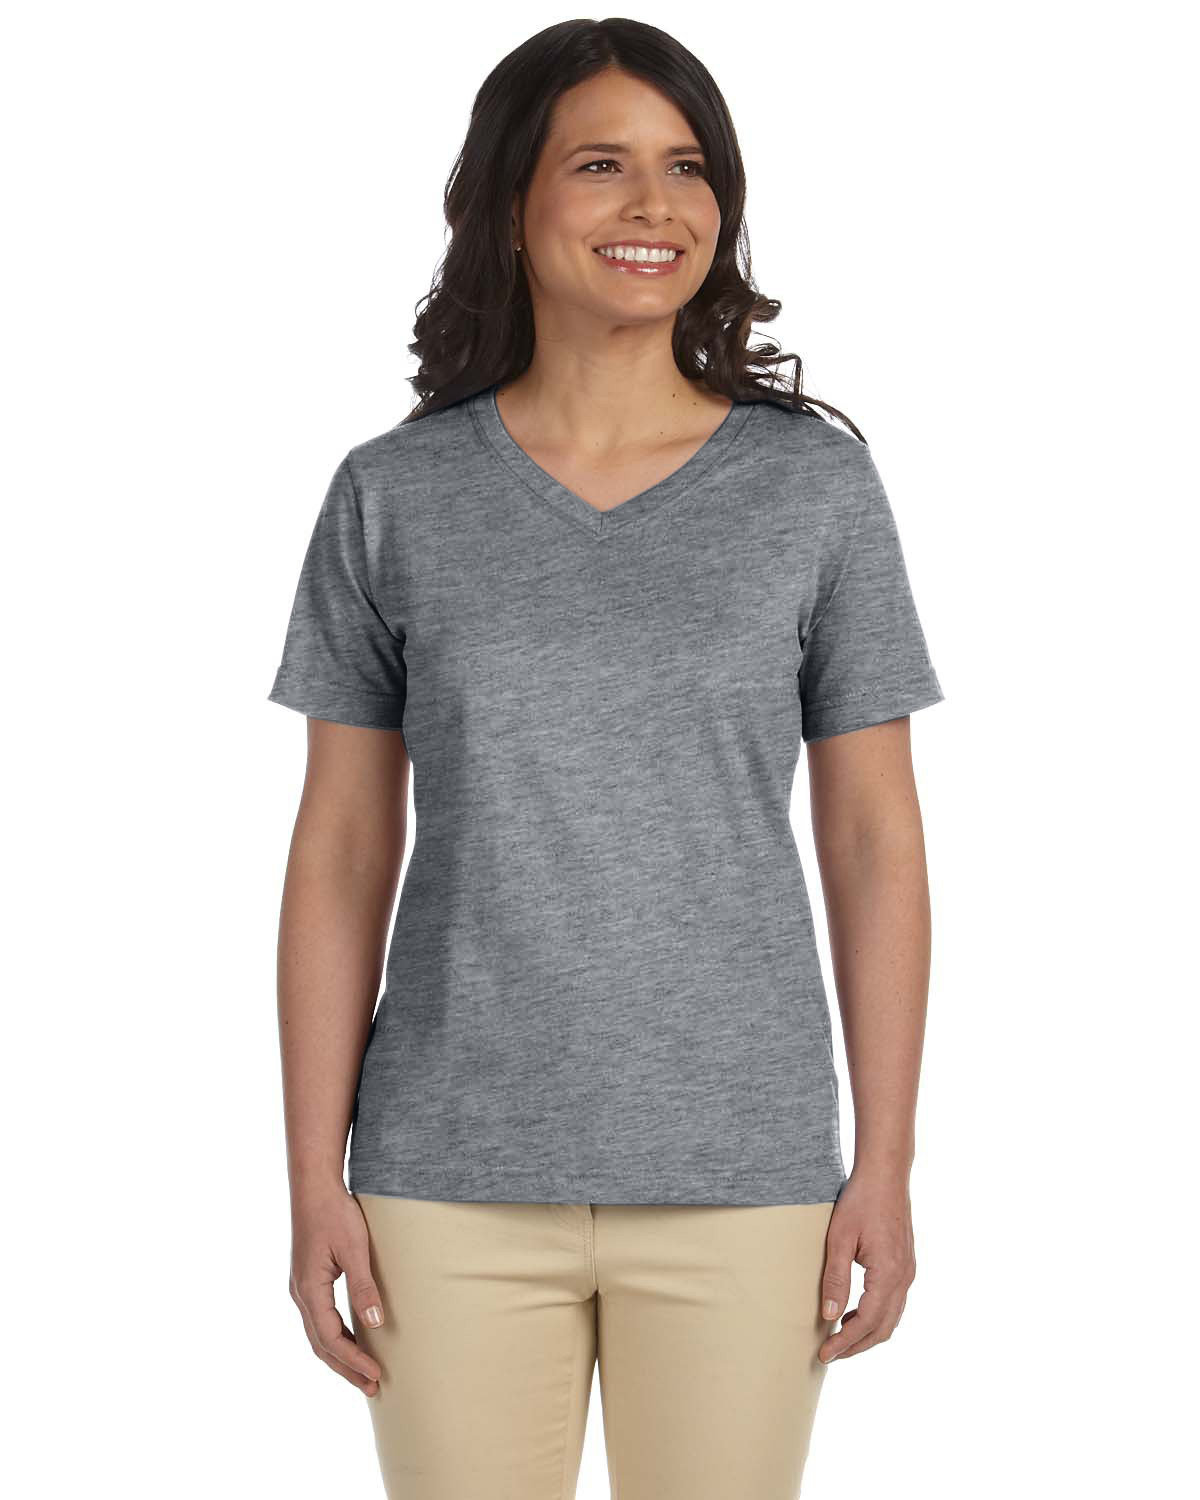 LAT Ladies' Premium Jersey V-Neck T-Shirt GRANITE HEATHER